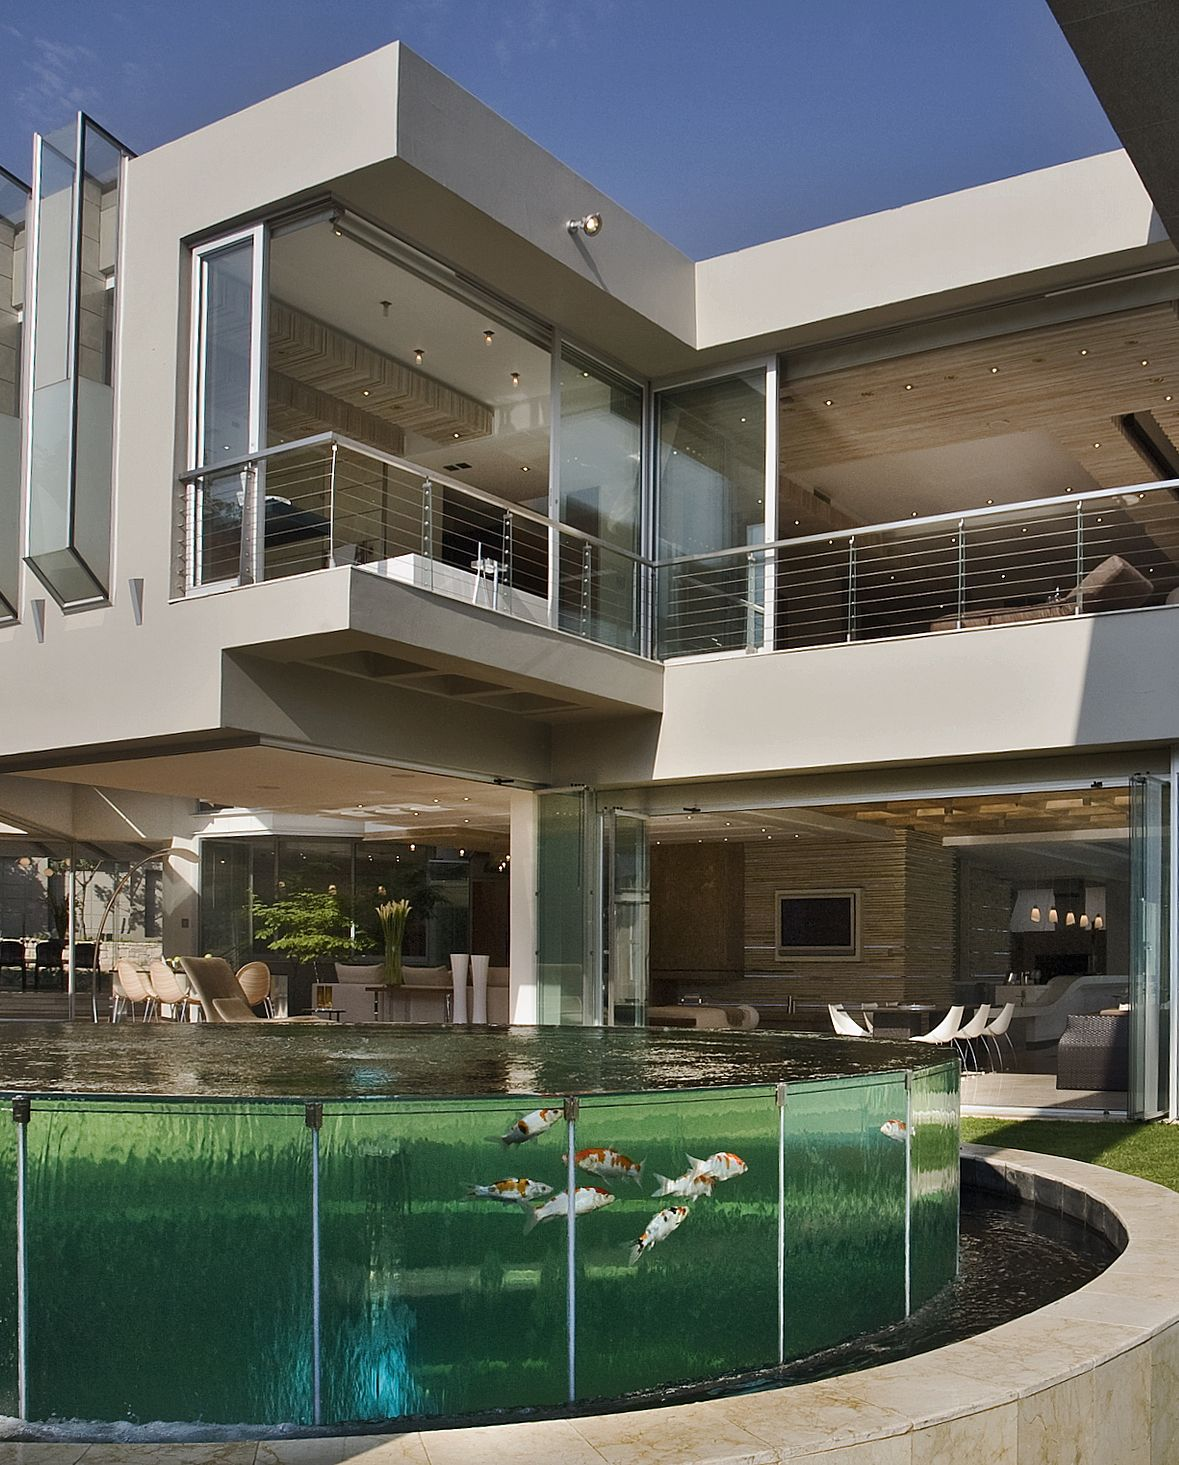 Hereu0027s A Dream House Design By Nico Van Der Meulen Architects. Glass House  Was Designed By Concept Based Studio Is An Impressive Two Story Contemporary  Home ...